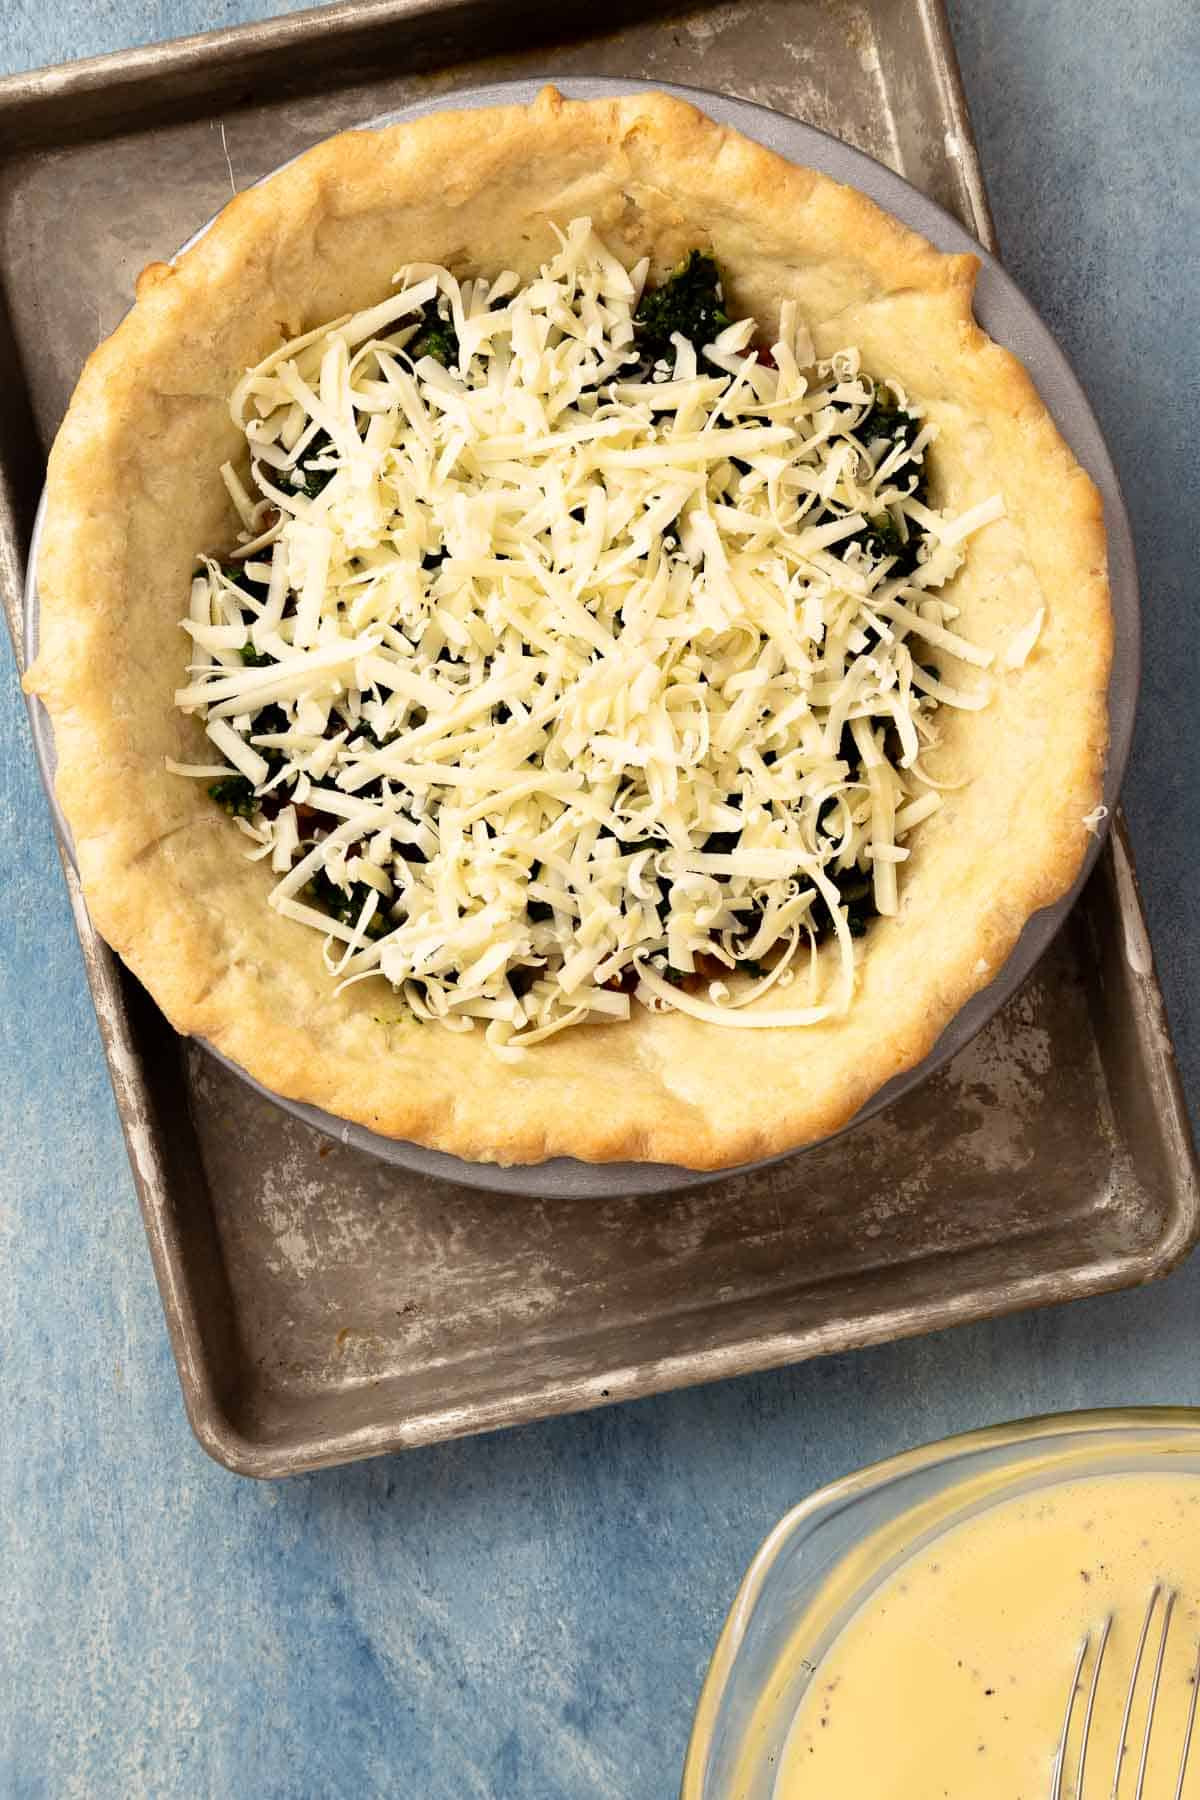 baked pie dough holding shredded cheese and spinach